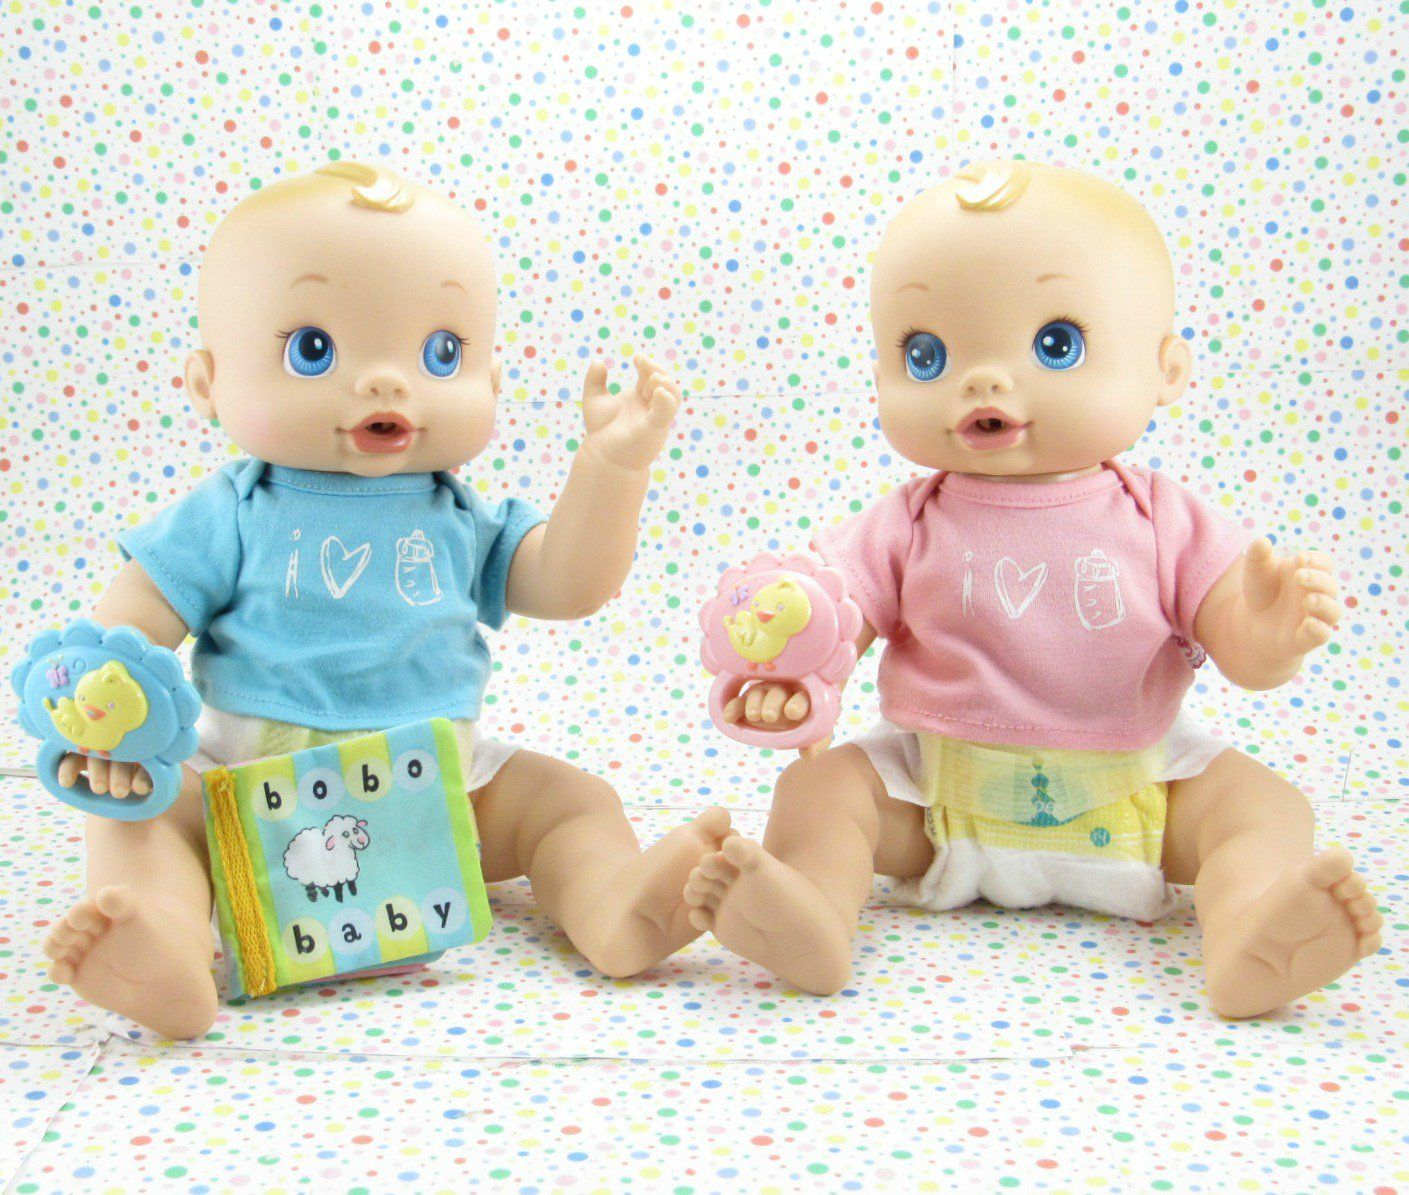 90 Best Baby Alive Images Baby Alive Baby Baby Alive Dolls